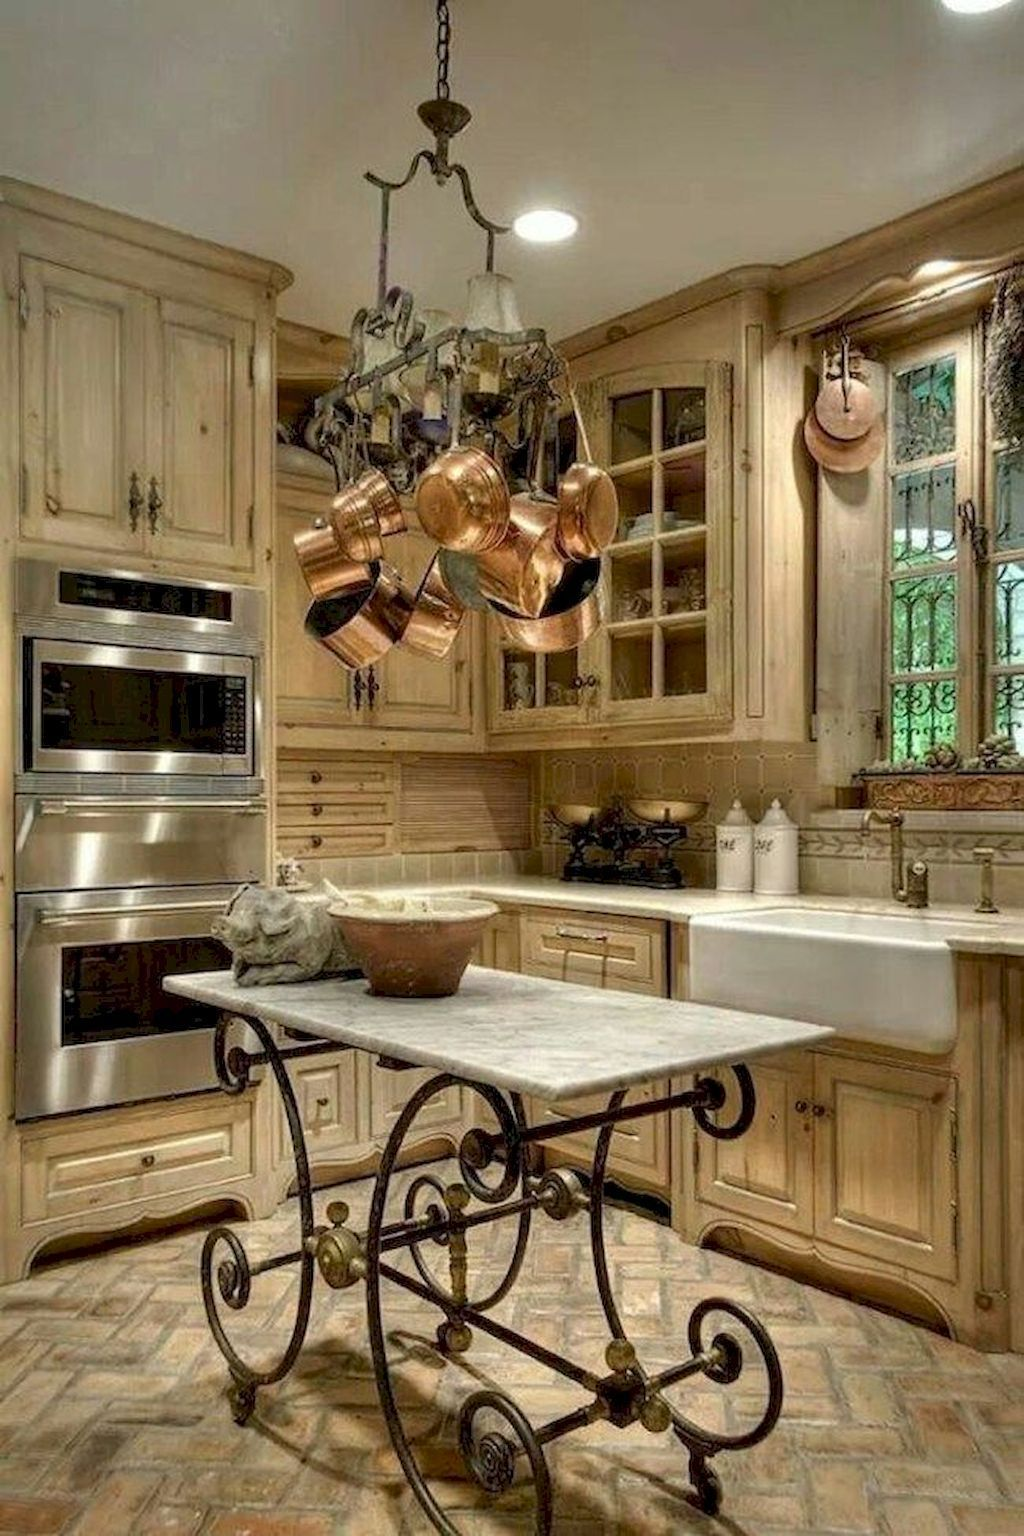 13 simple french country kitchen decor ideas in 2020 country kitchen designs french country on kitchen interior french country id=24031